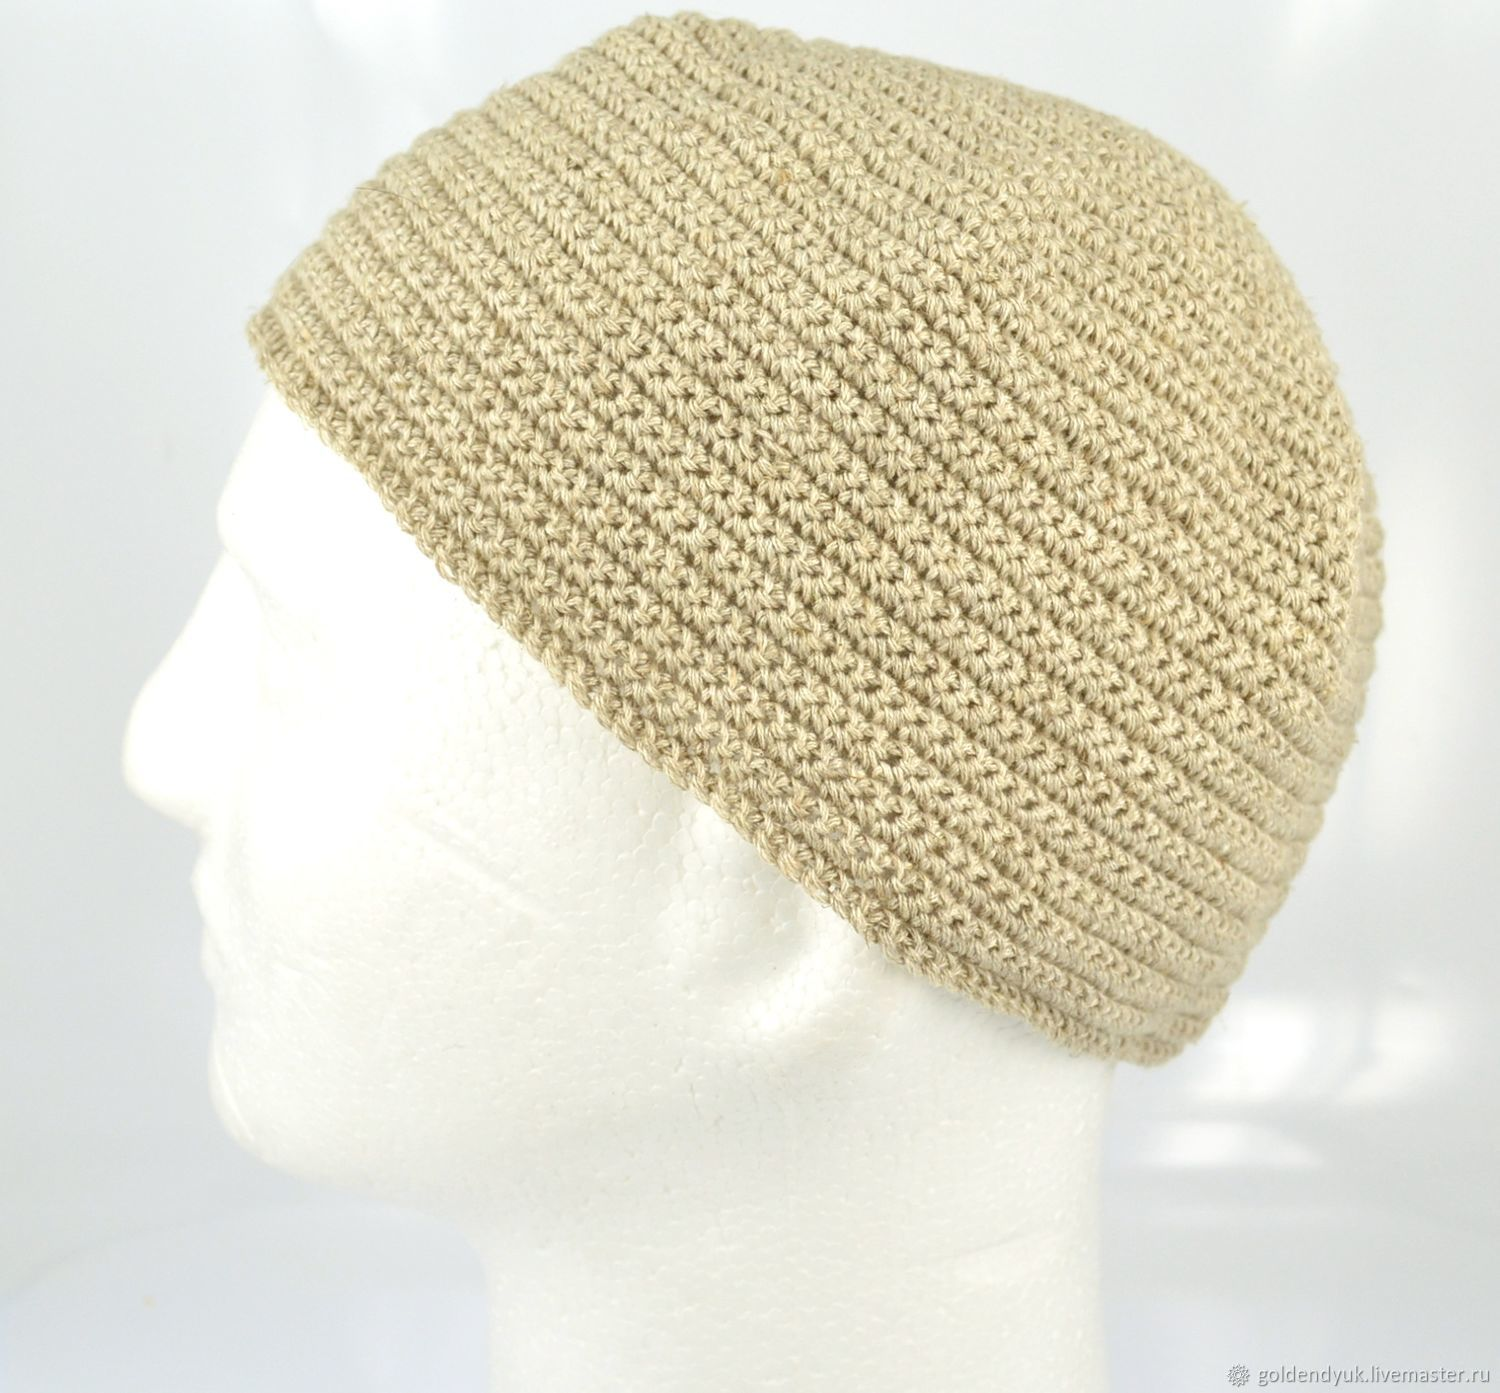 Hand-knitted men's hat made of linen, Caps, Moscow,  Фото №1